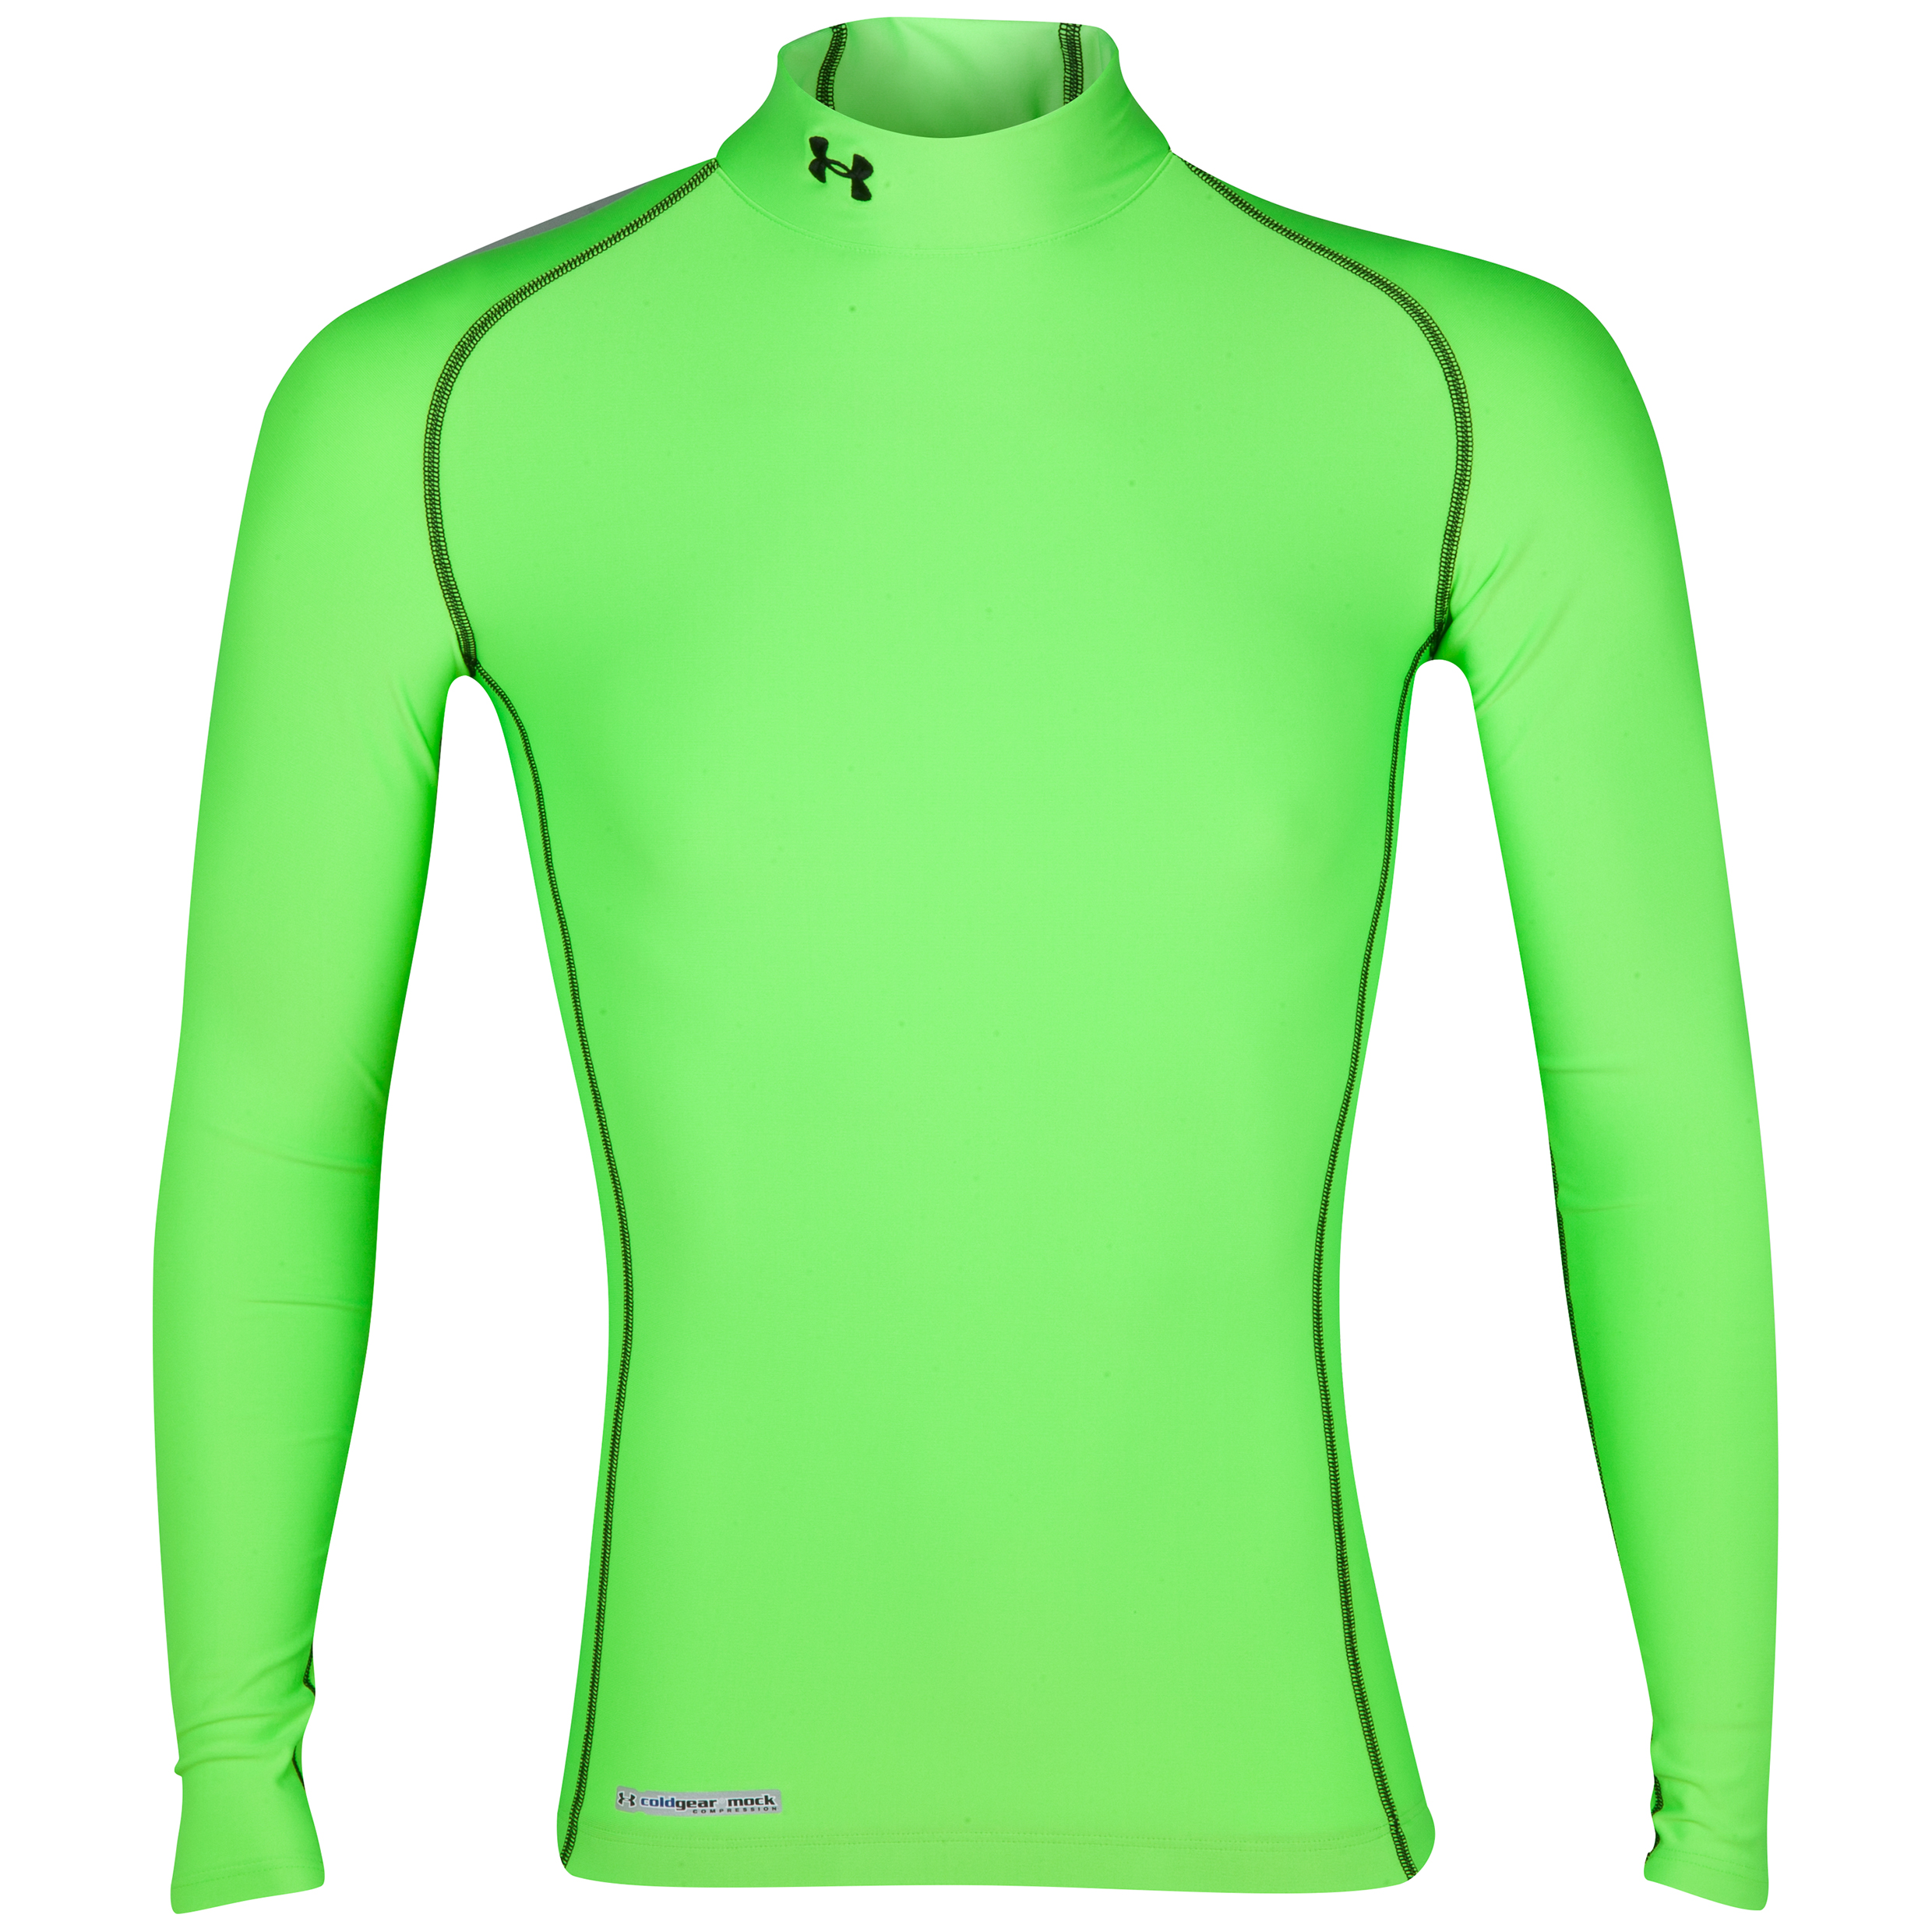 Under Armour Evo Coldgear mock Base Layer Top - Long Sleeve Green